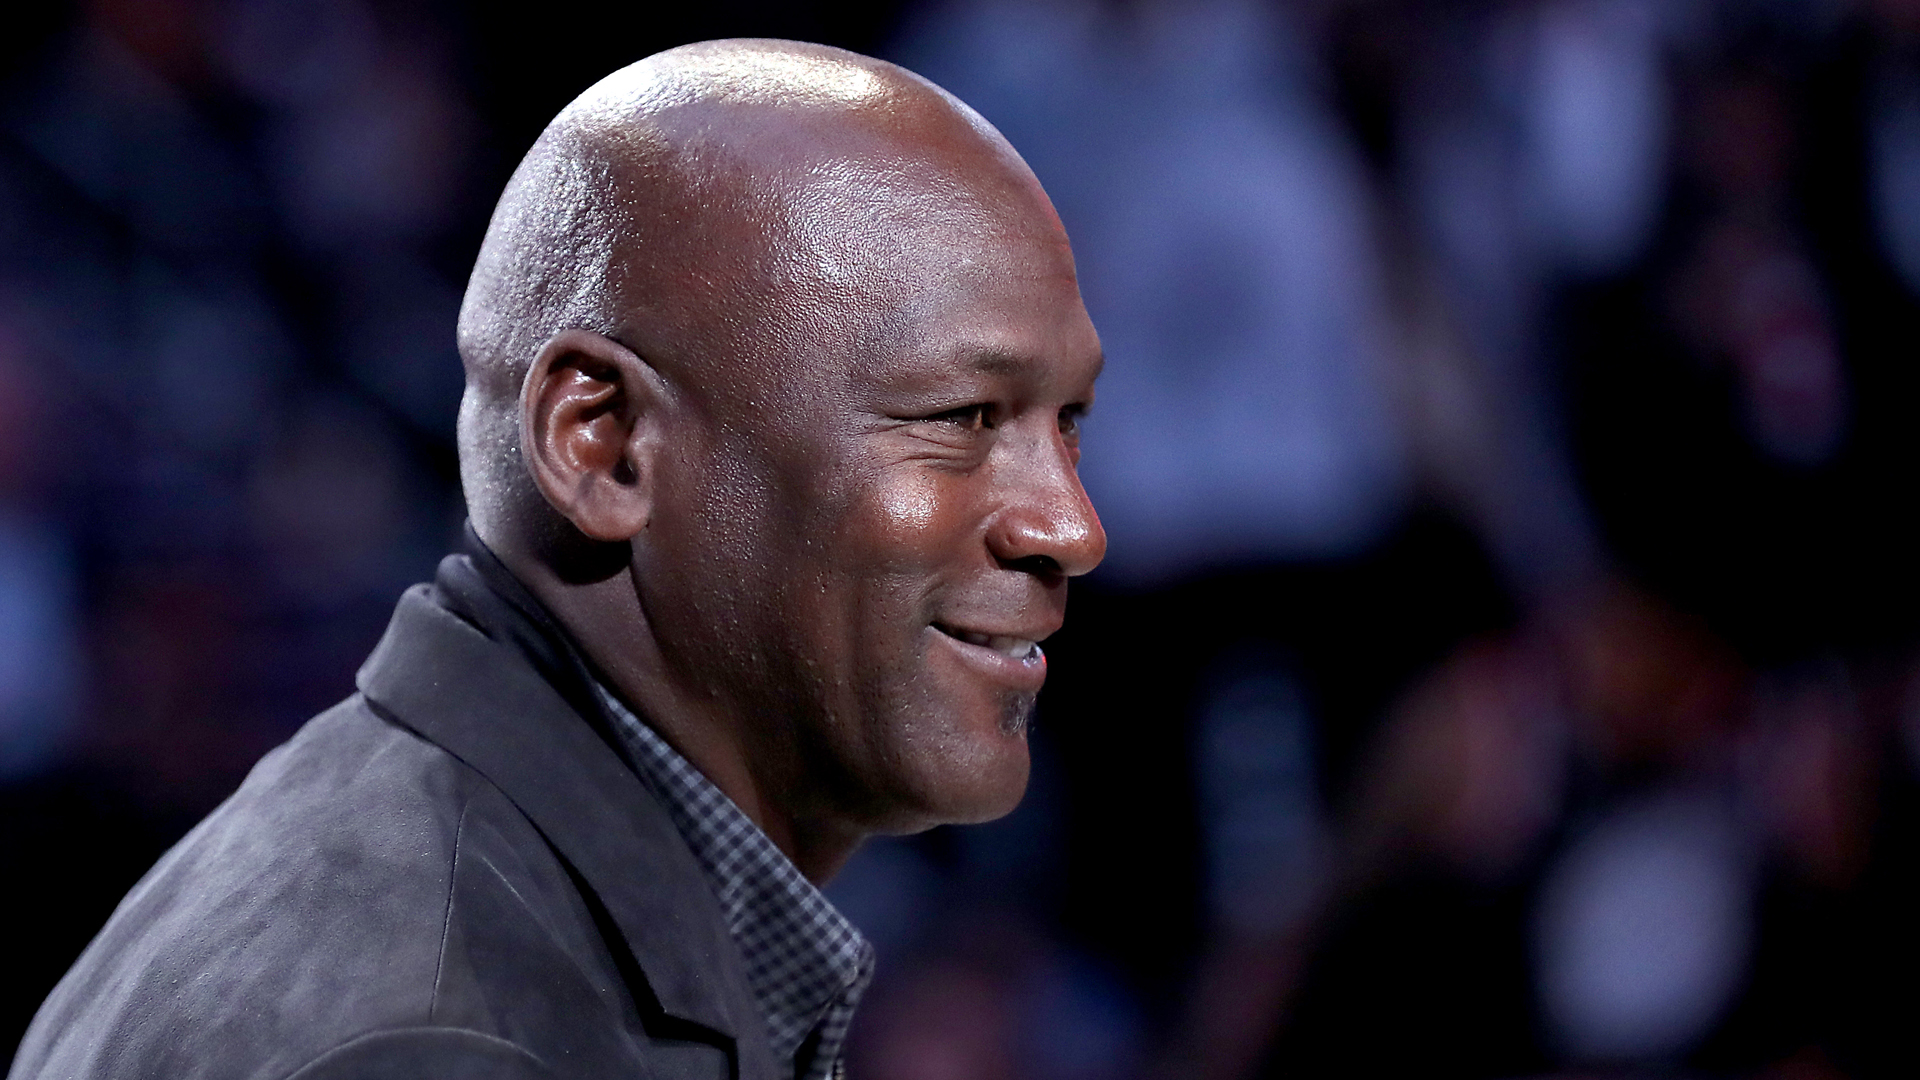 Michael Jordan, owner of the Charlotte Hornets, takes part in a ceremony honoring the 2020 NBA All-Star game during a break in play as Team LeBron take on Team Giannis in the fourth quarter during the NBA All-Star game as part of the 2019 NBA All-Star Weekend at Spectrum Center on February 17, 2019 in Charlotte, North Carolina. (Credit: Streeter Lecka/Getty Images)